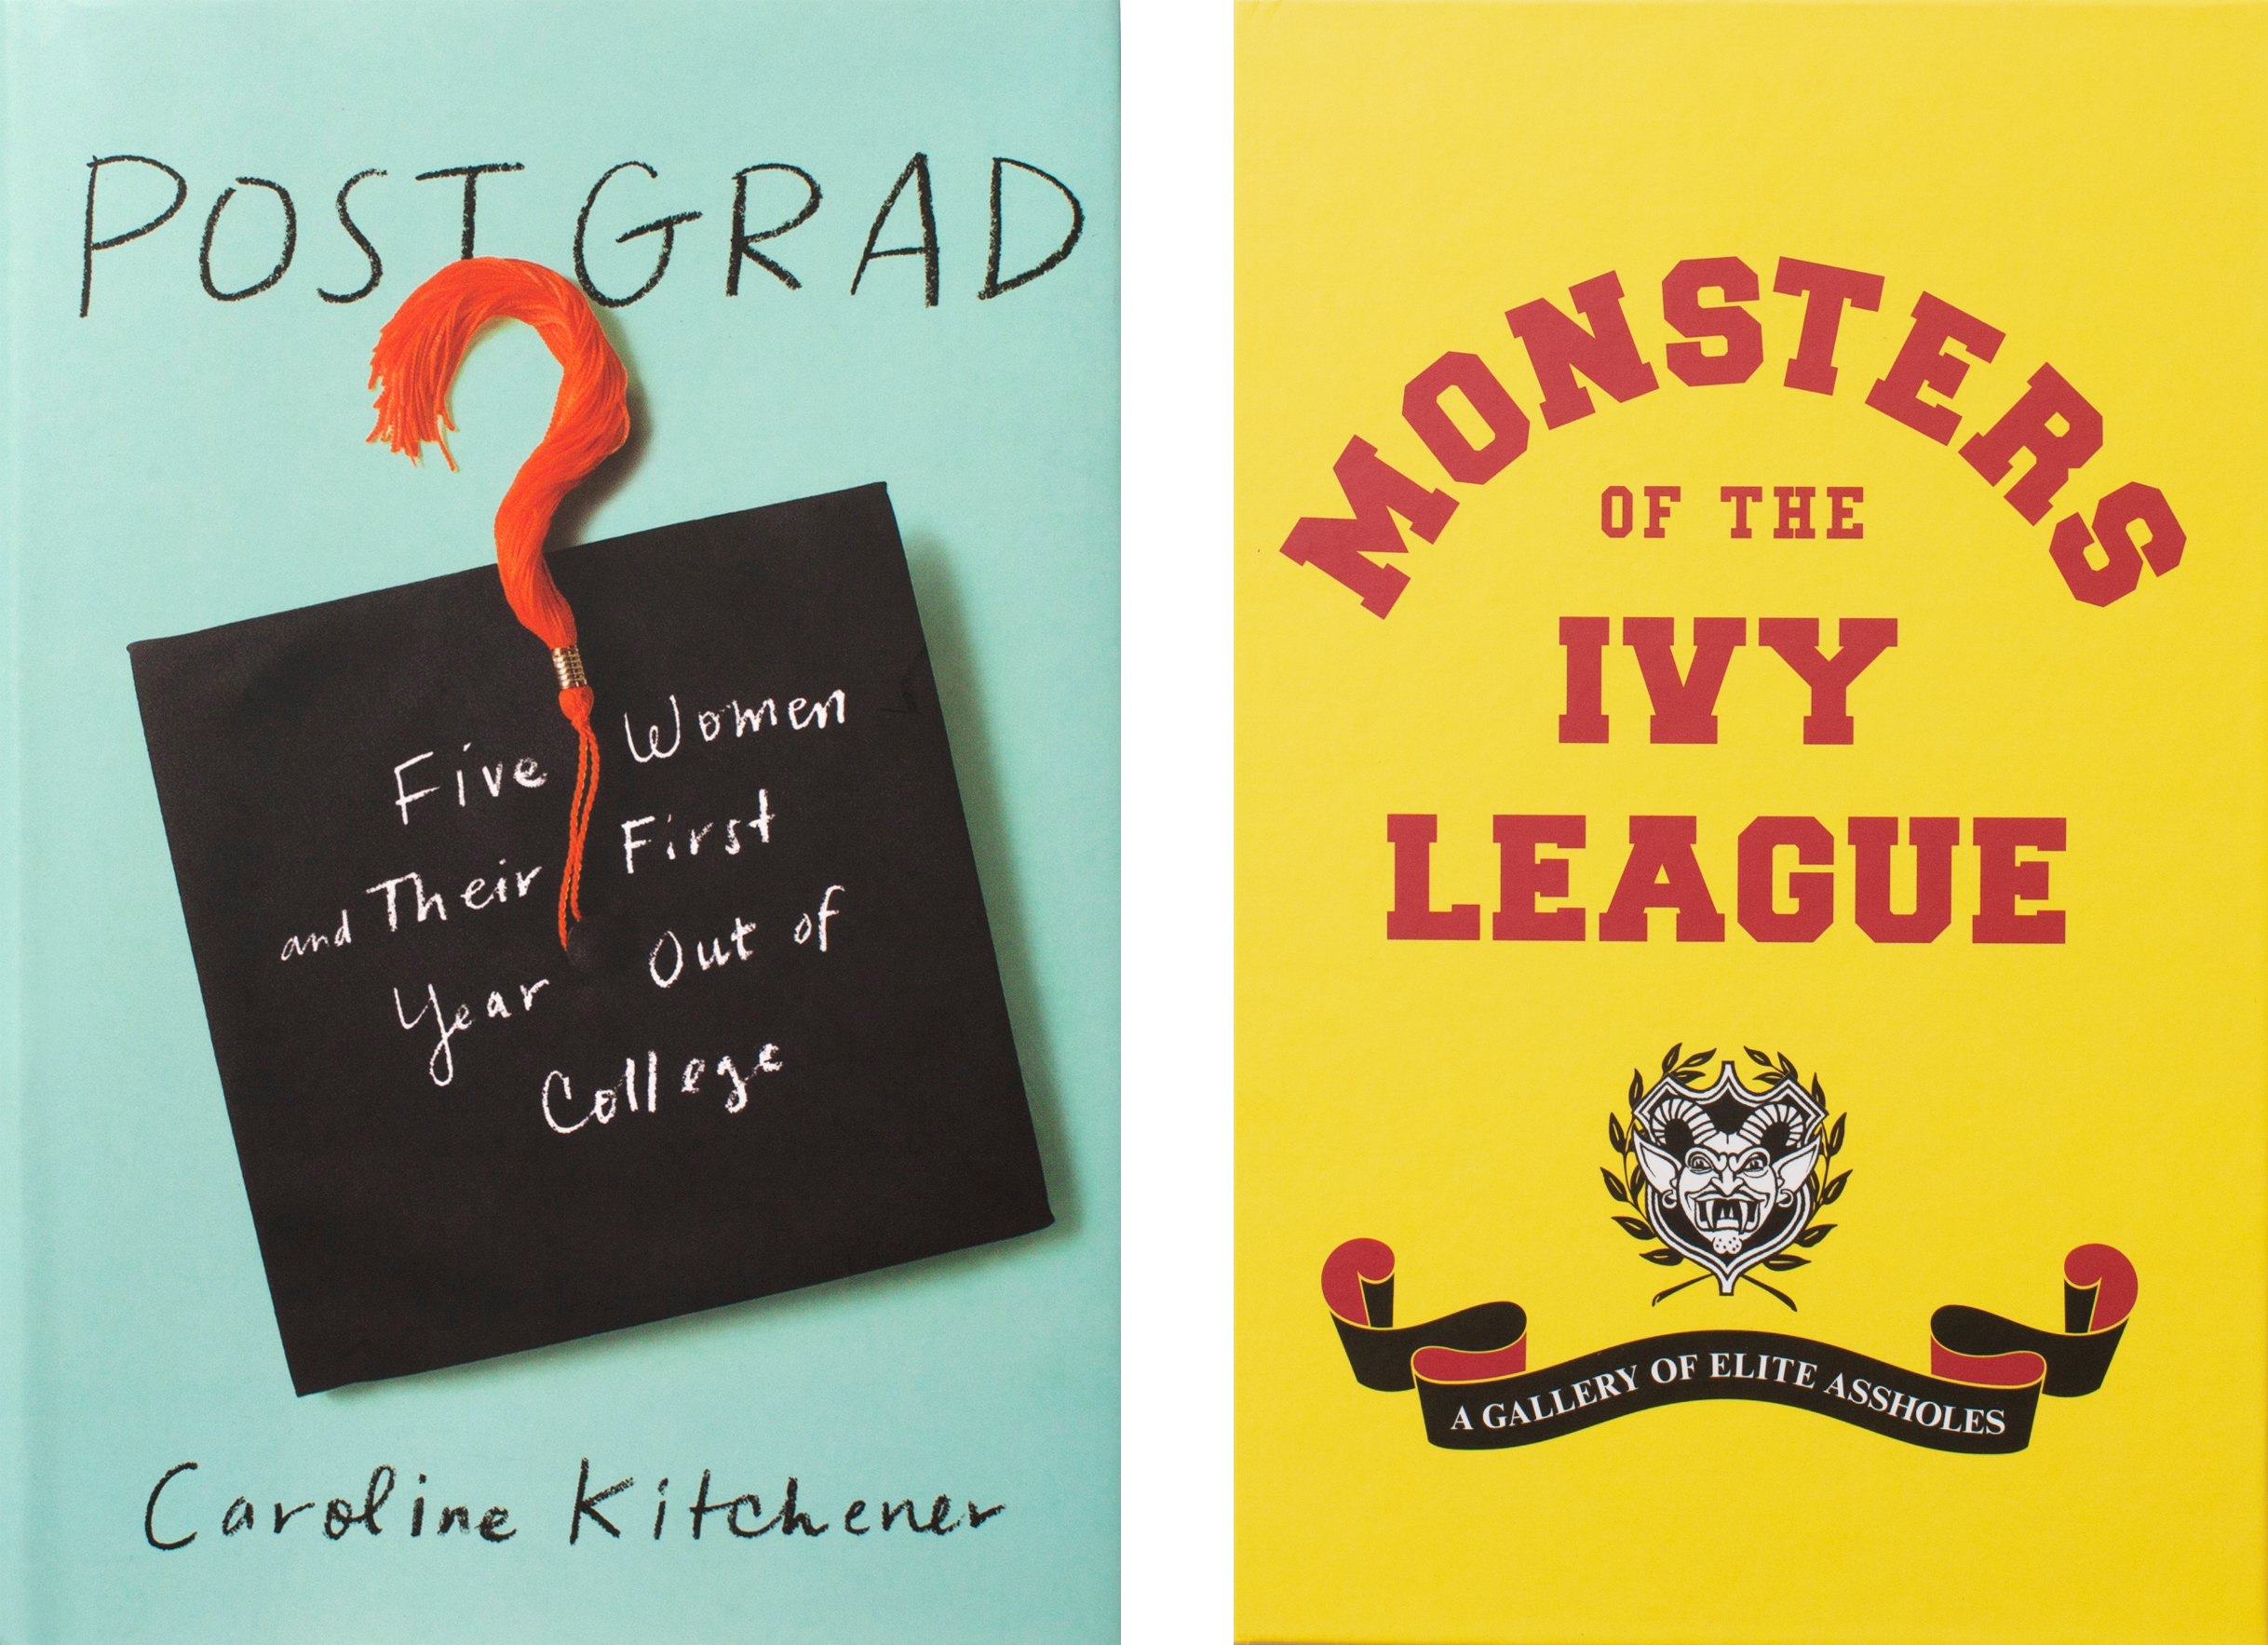 (L-R)  Post Grad  by Caroline Kitchener and  Monsters of the Ivy League  by Steve Radlauer and Ellis Weiner